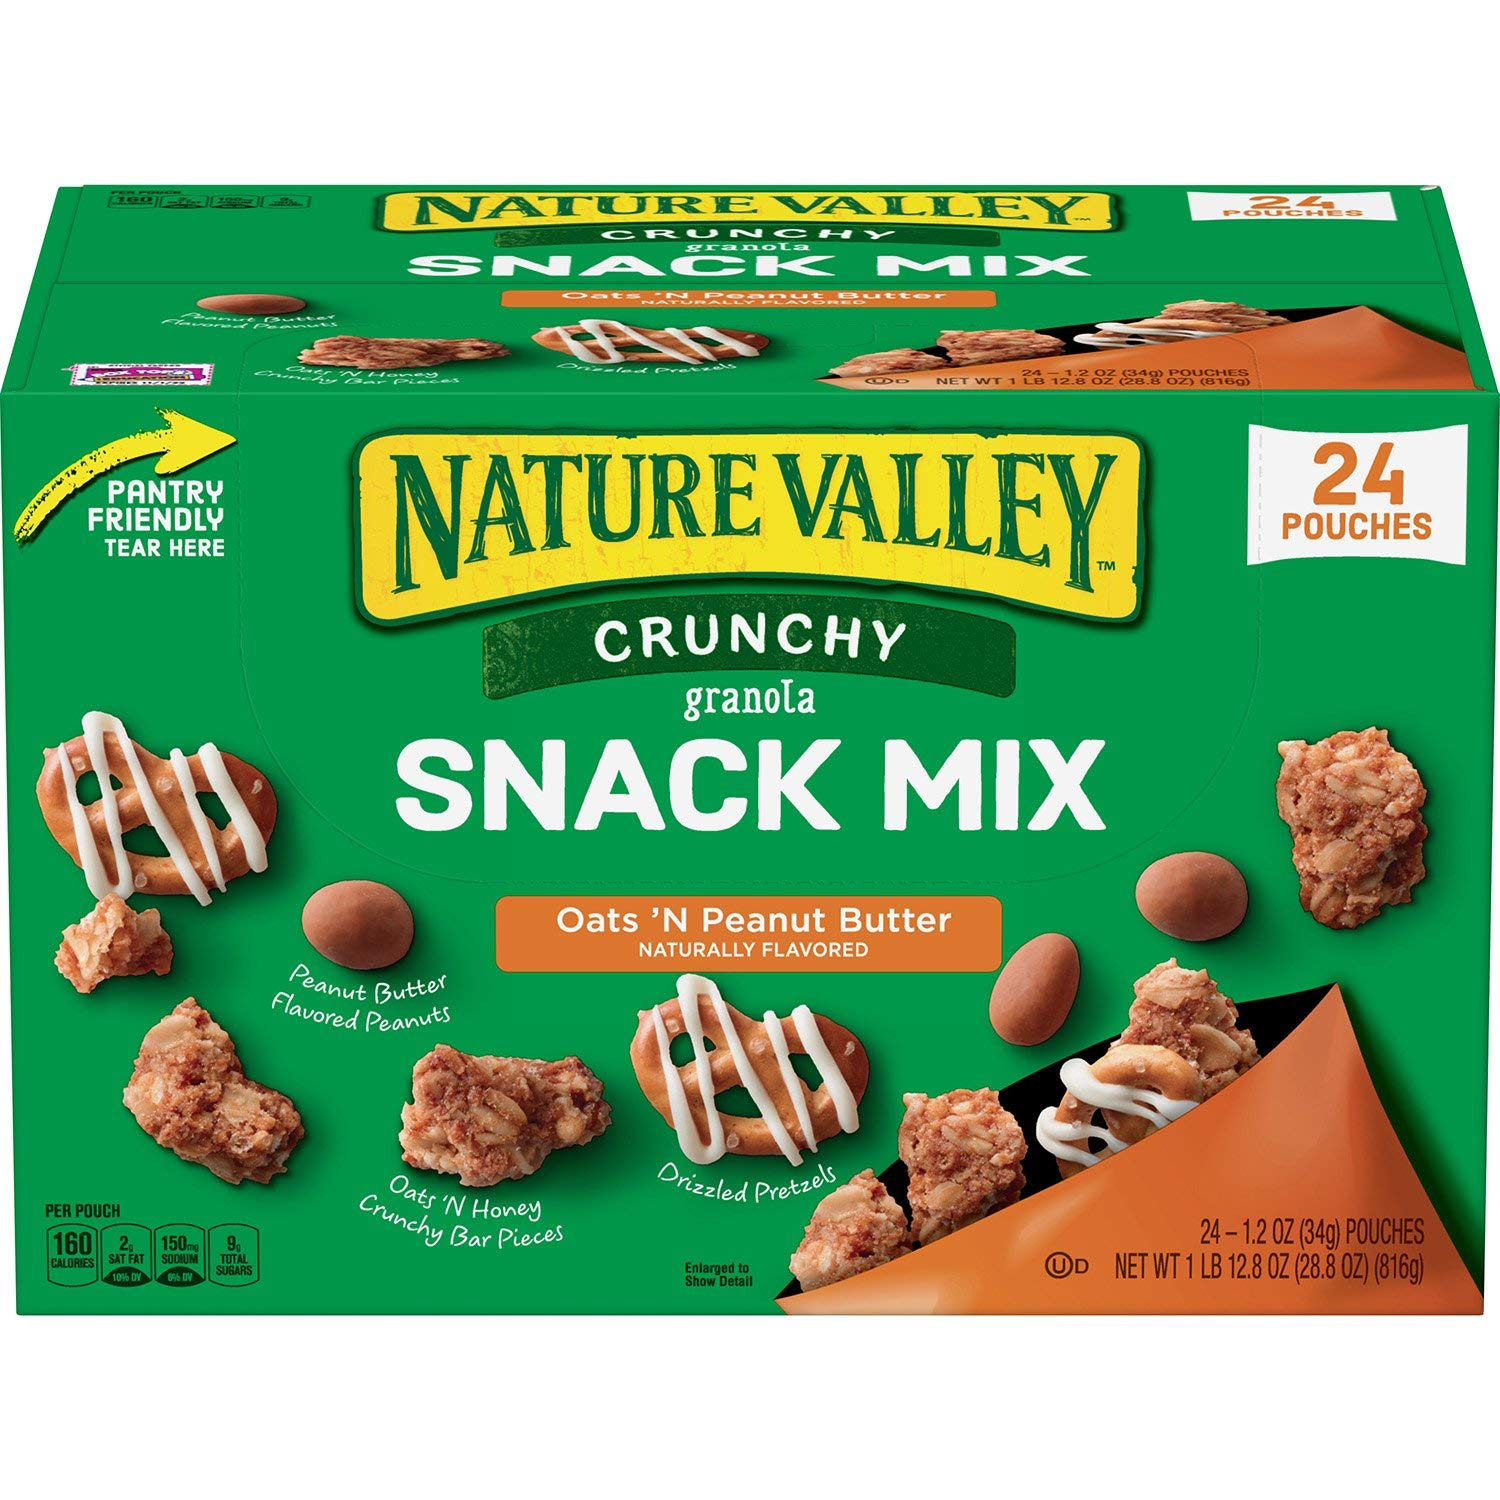 Nature Valley Nature Valley Crunch Granola Snack Mix Oats 'N Peanut Butter 24 X 1.2 OunceNet wt 28.8 Ounce , 28.8 Ounce